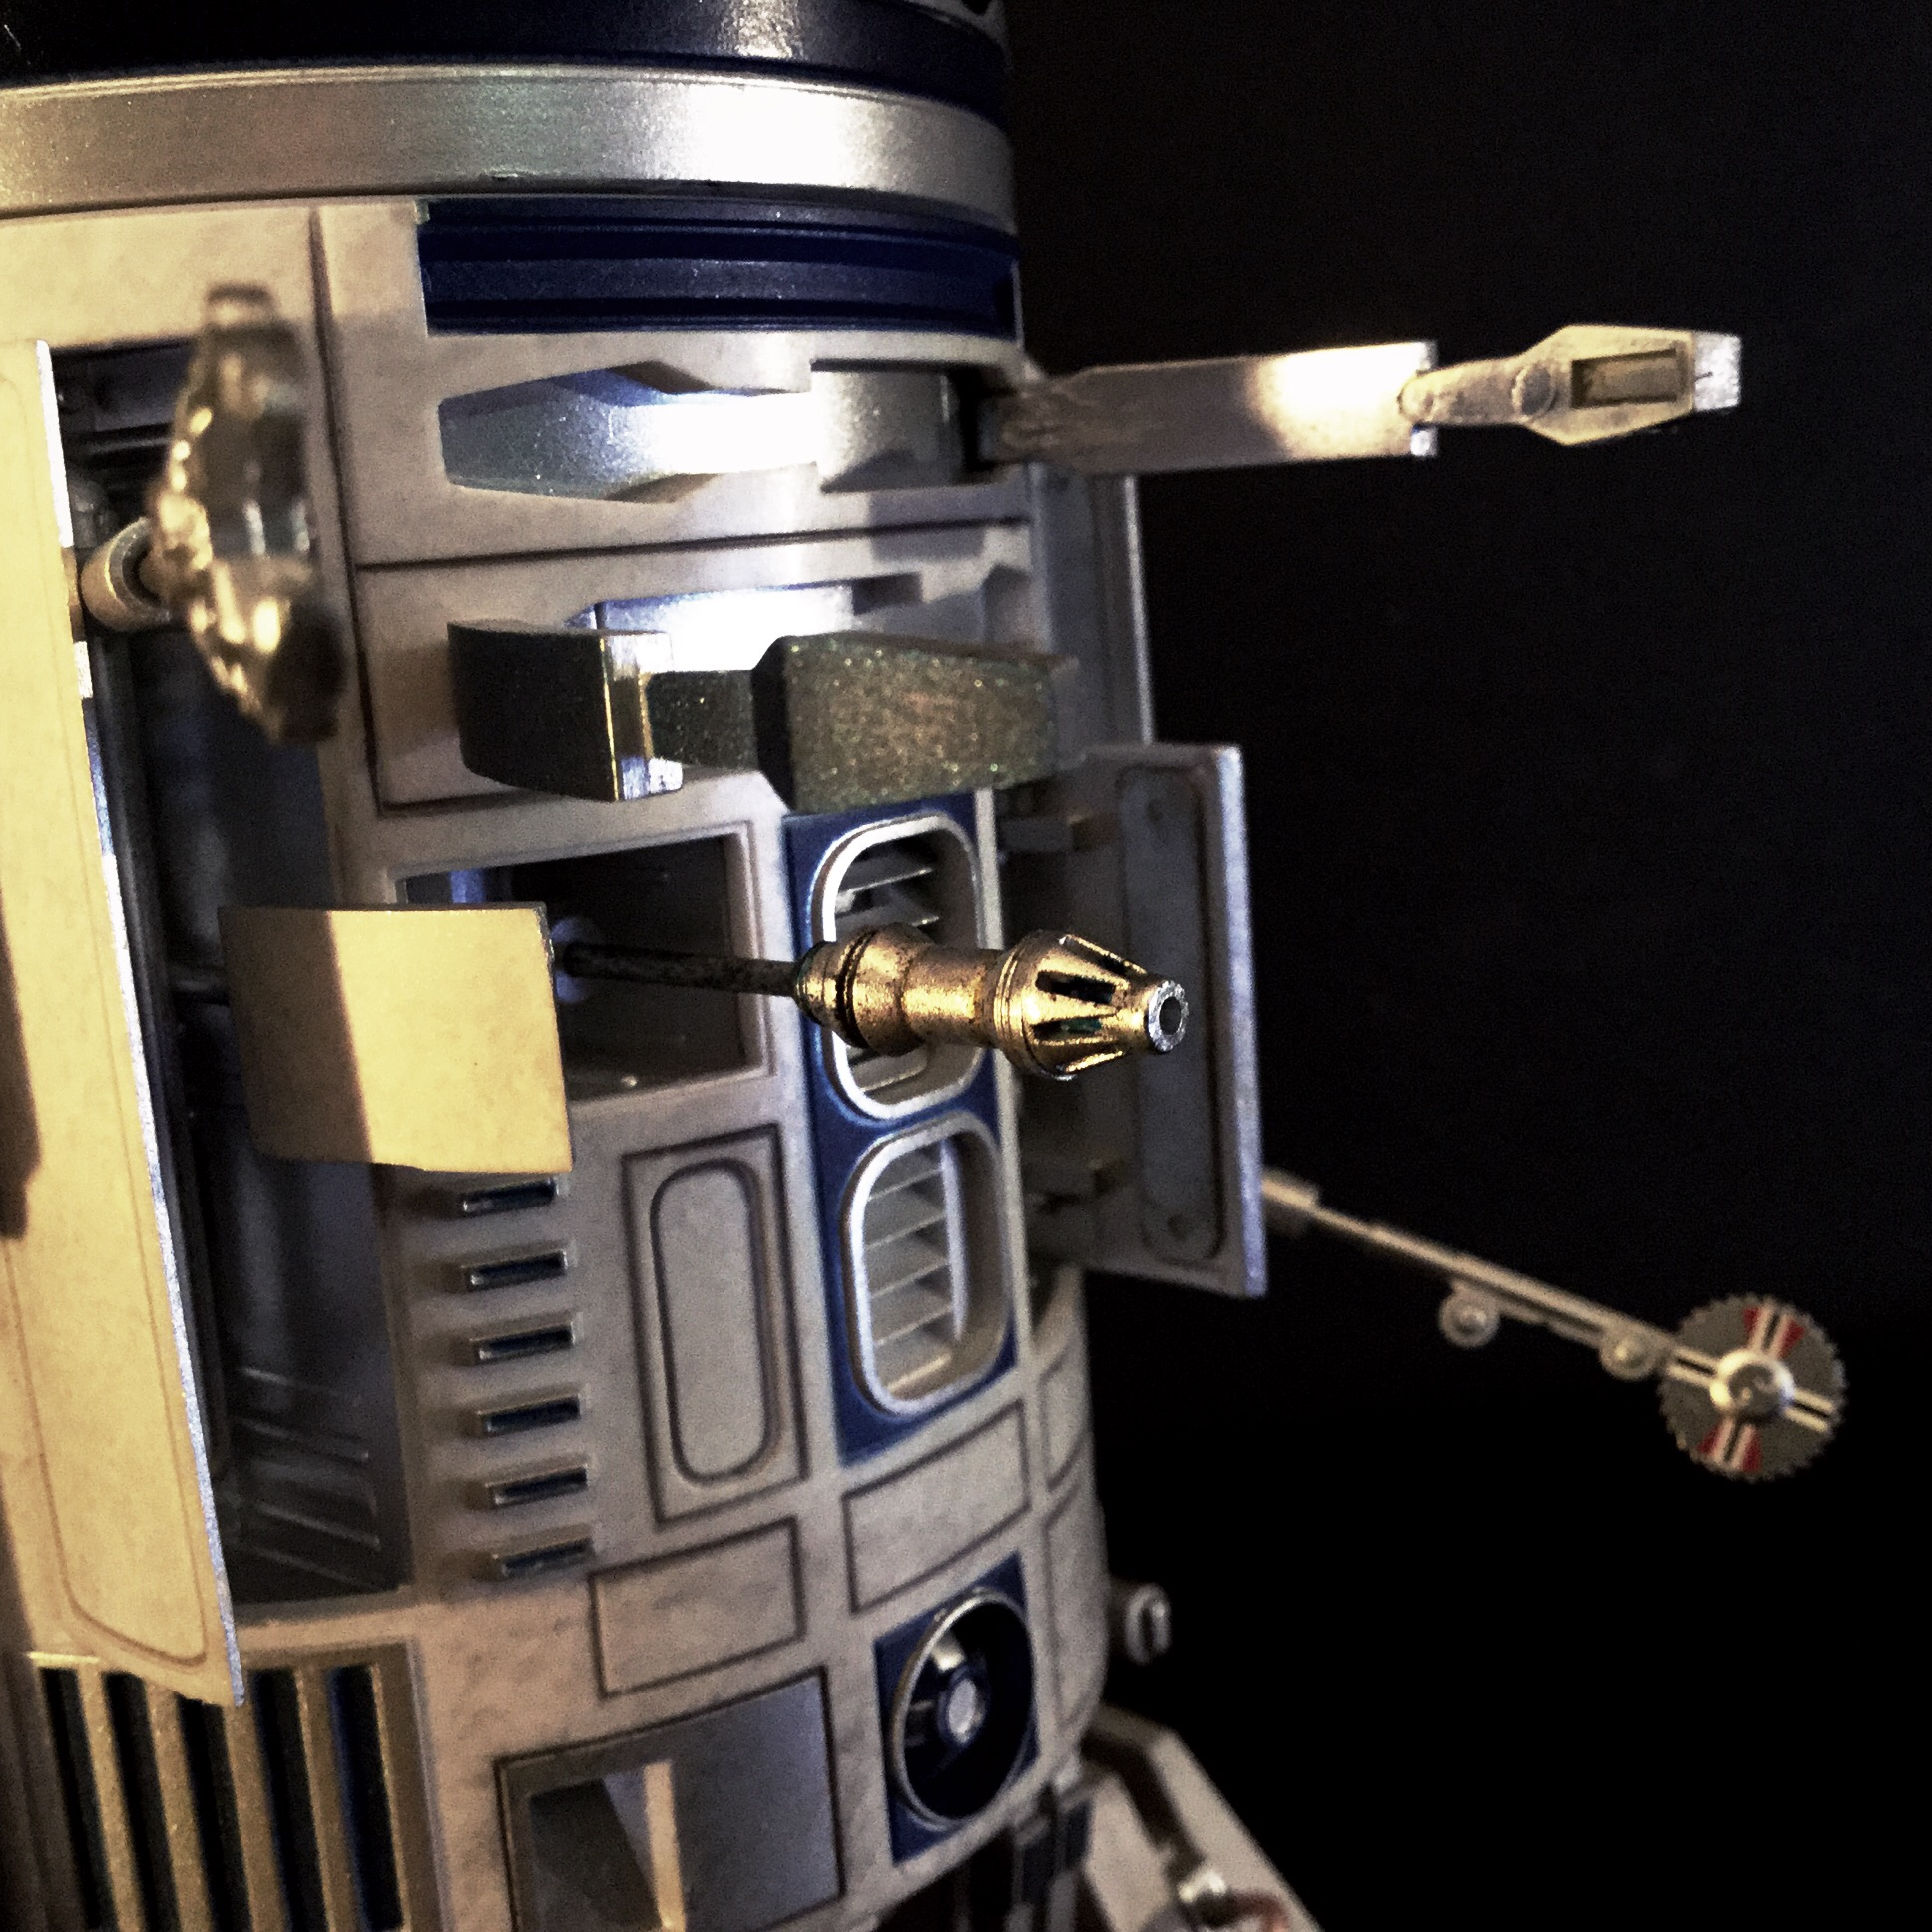 [REVIEW] Star Wars : R2-D2 Deluxe (Sideshow) 16257822939_51375341c4_o